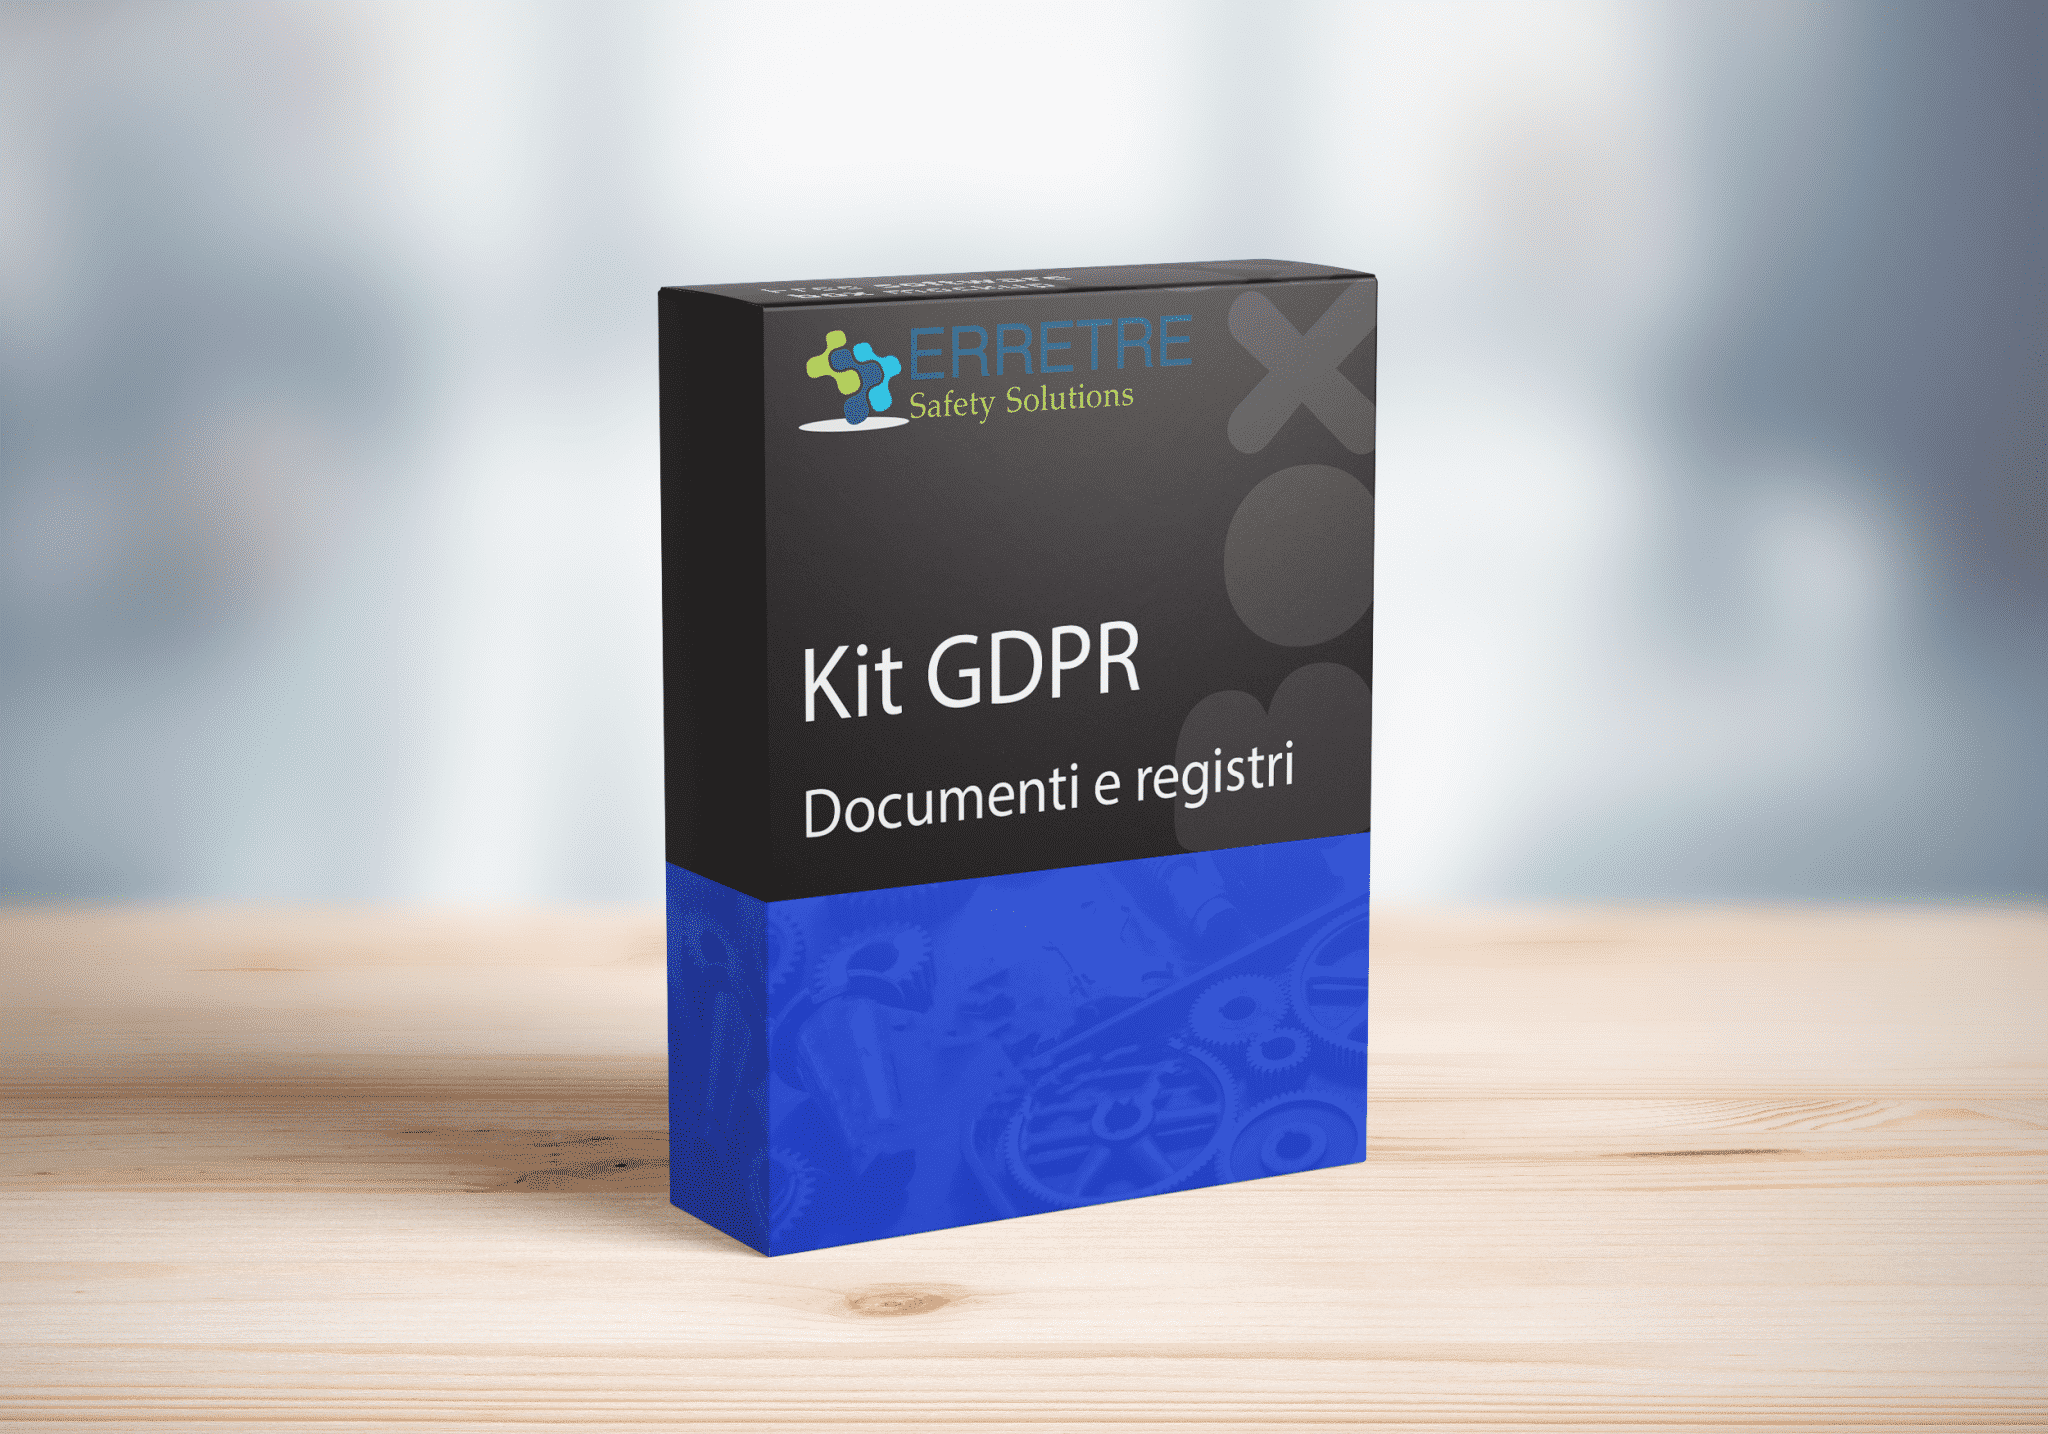 Kit Documentale GDPR - ERRETRE Safety Solutions